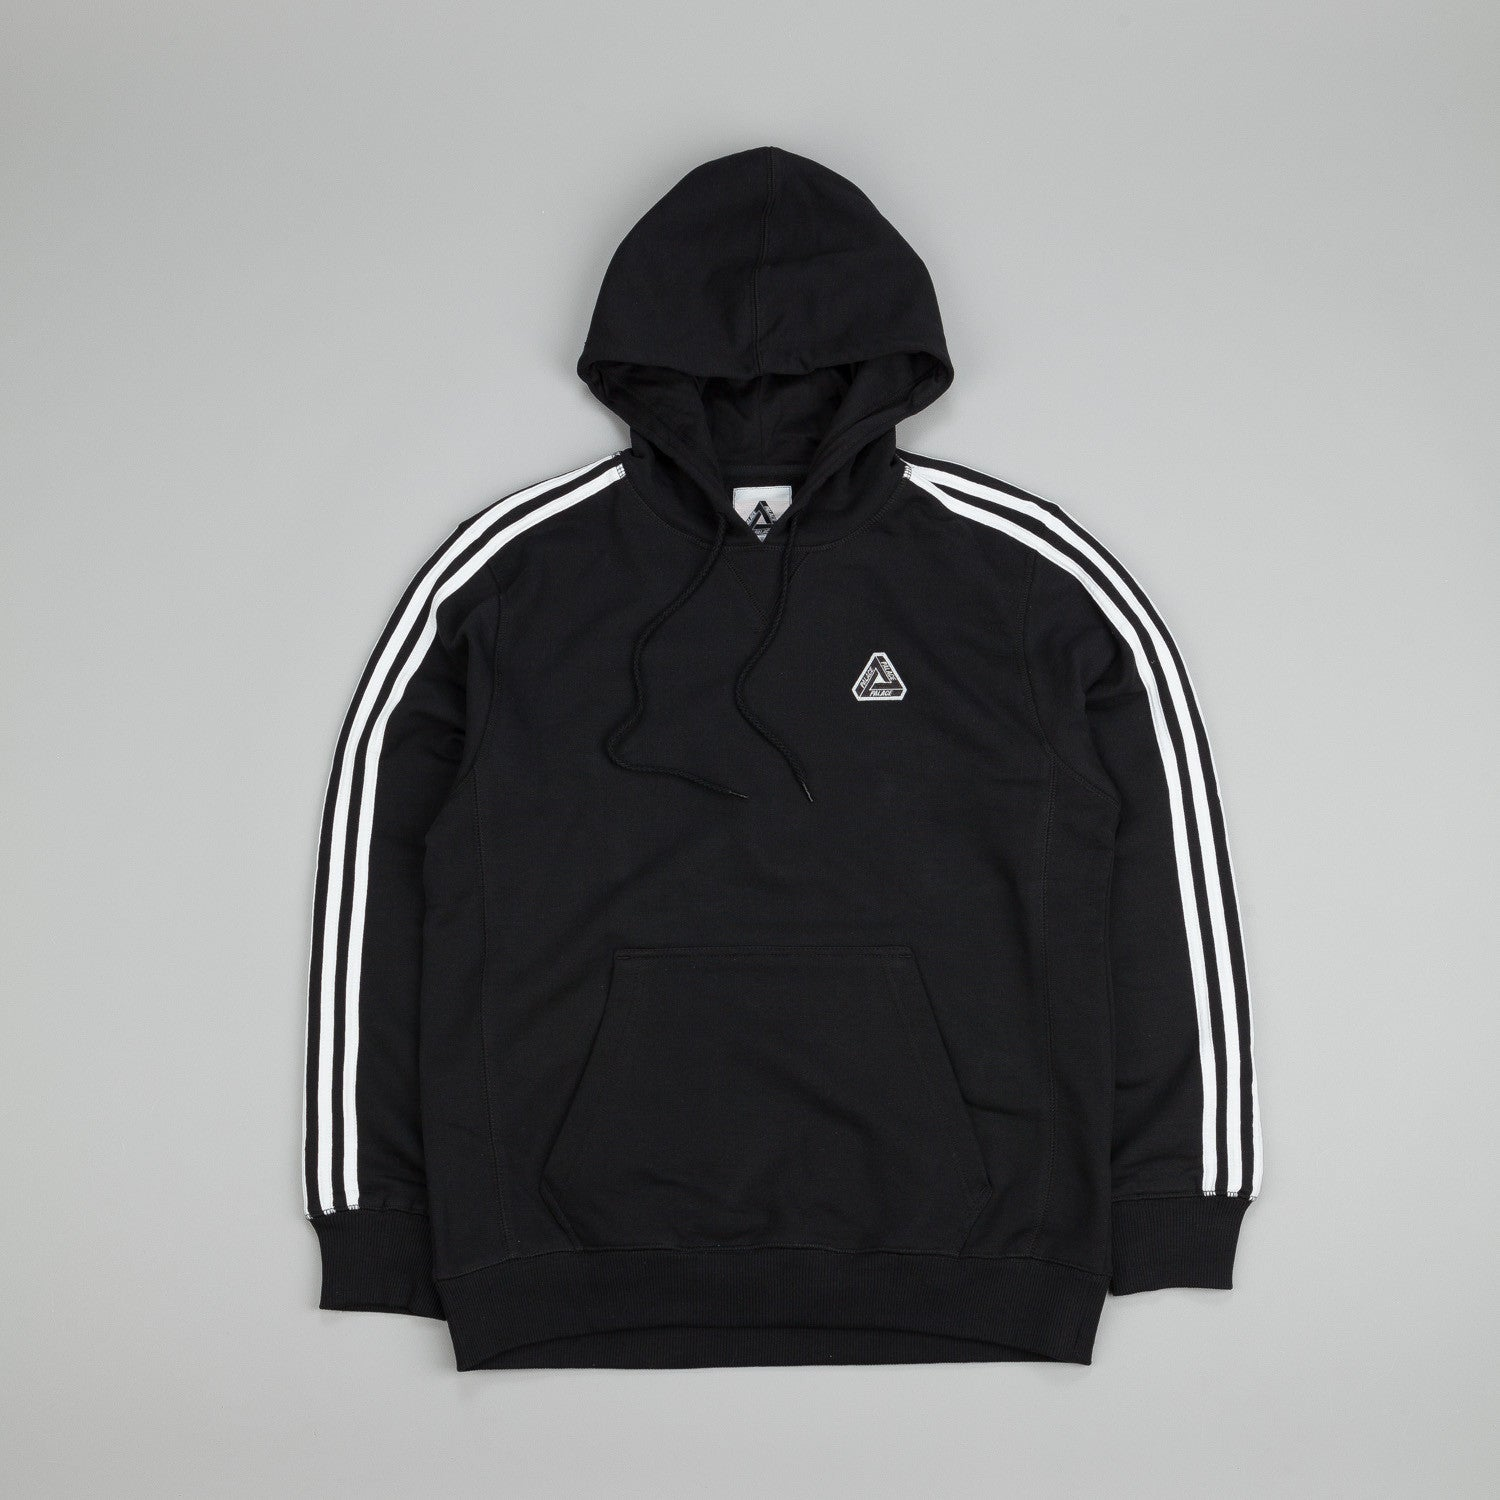 Adidas x Palace Hyper Hooded Sweatshirt Black